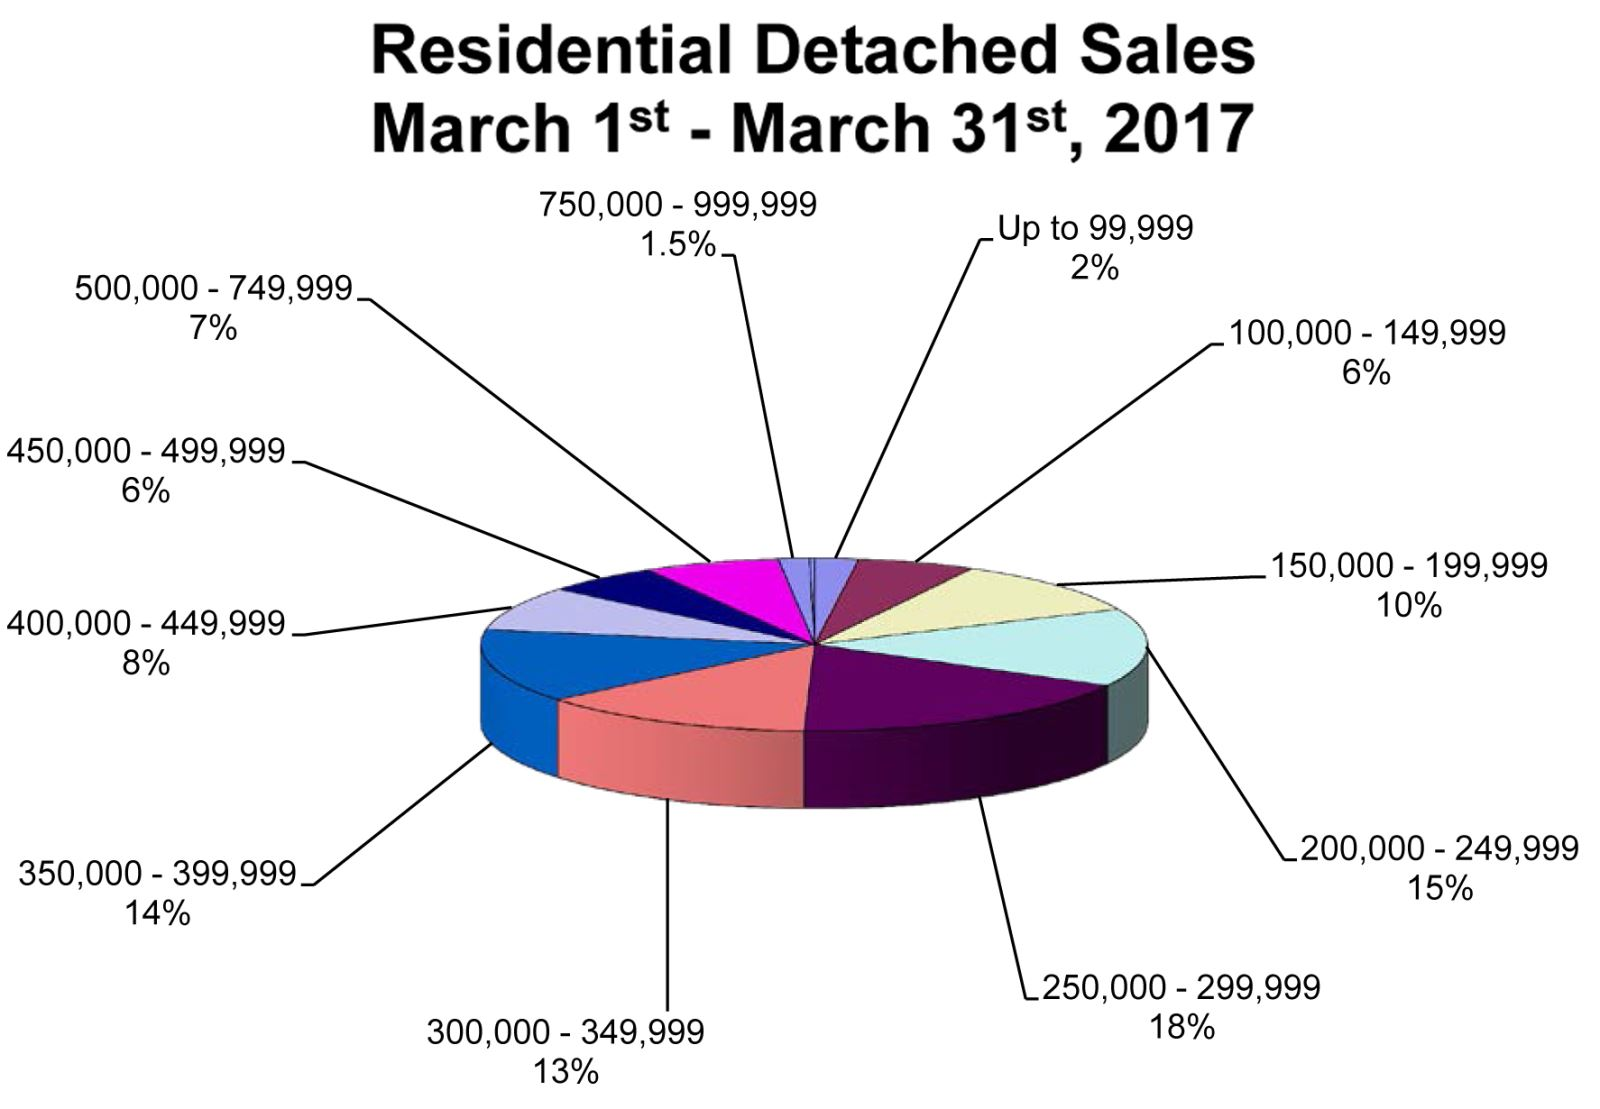 RD-Sales-Pie-Chart-March-20171